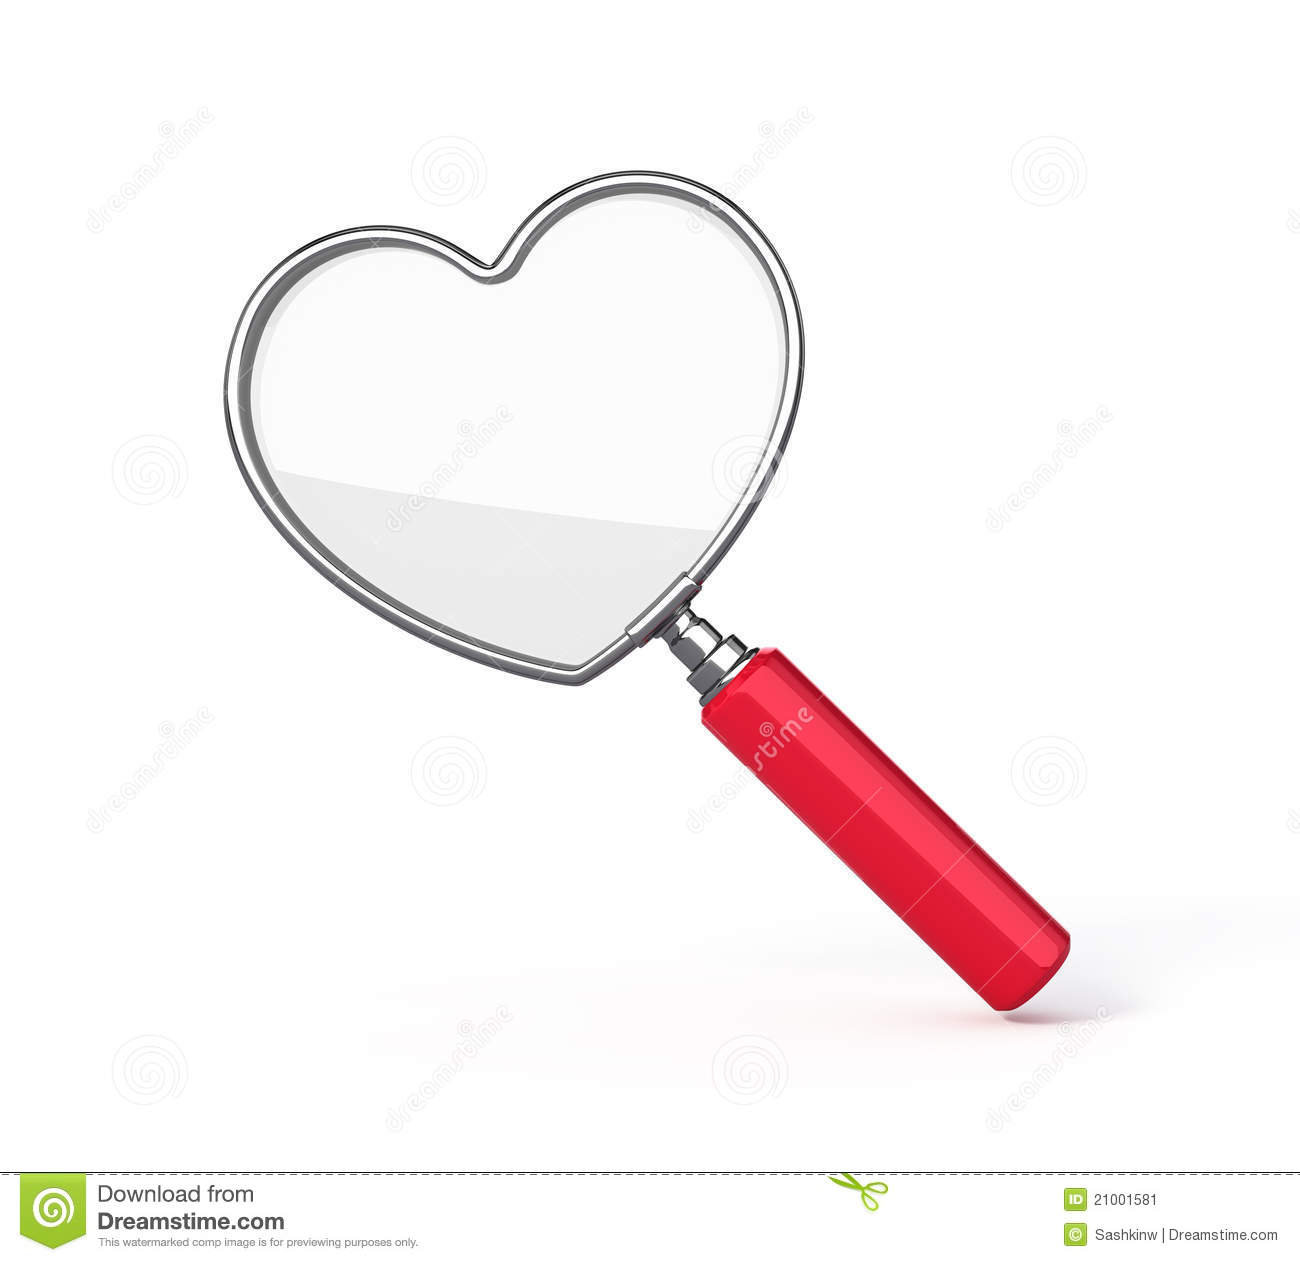 Heart Shaped Magnifying Glass Stock Image - Image: 21001581